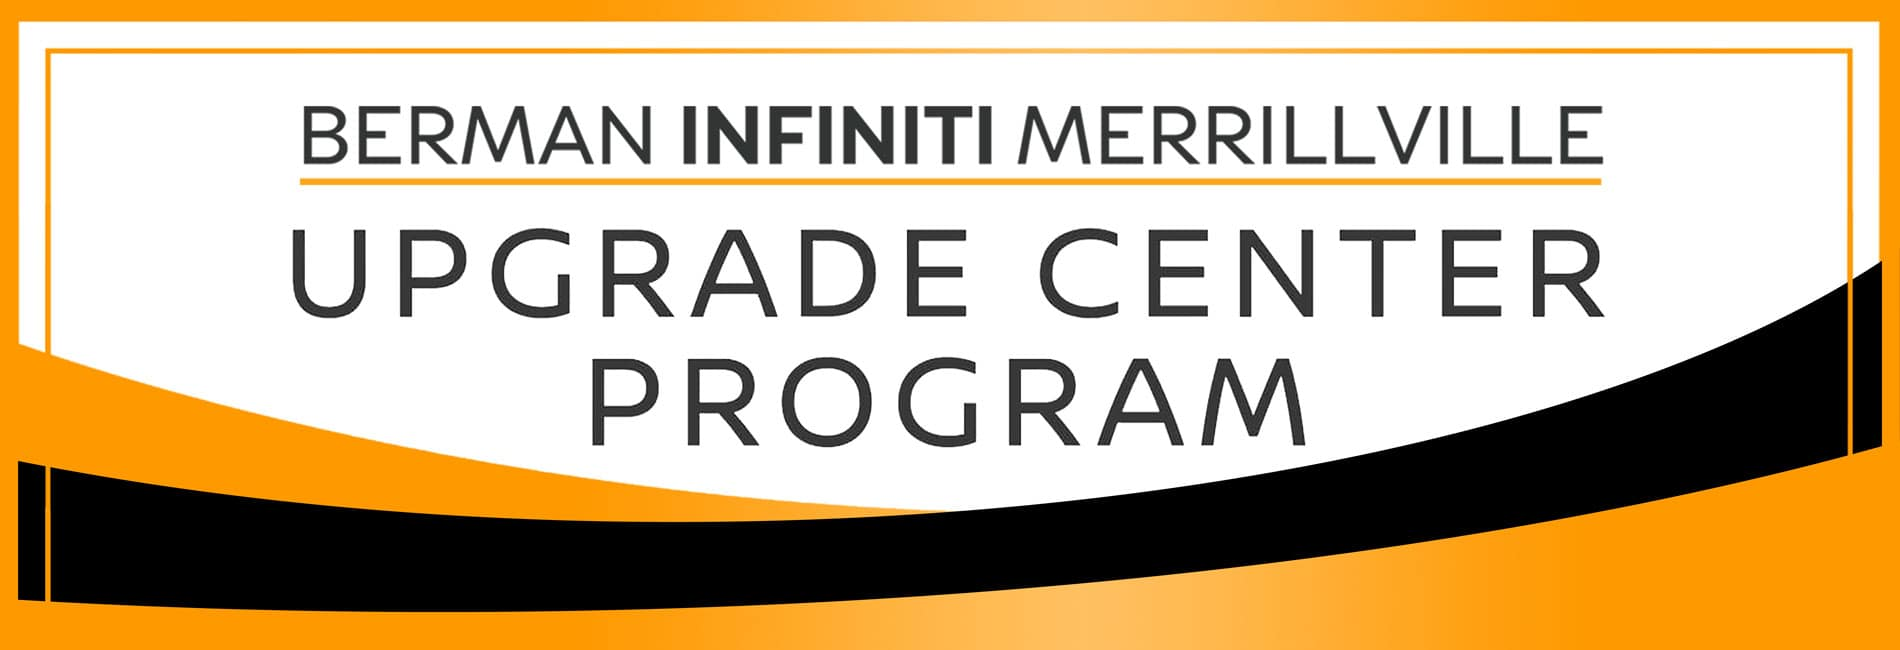 Upgrade Center at Berman INFINITI of Merrillville